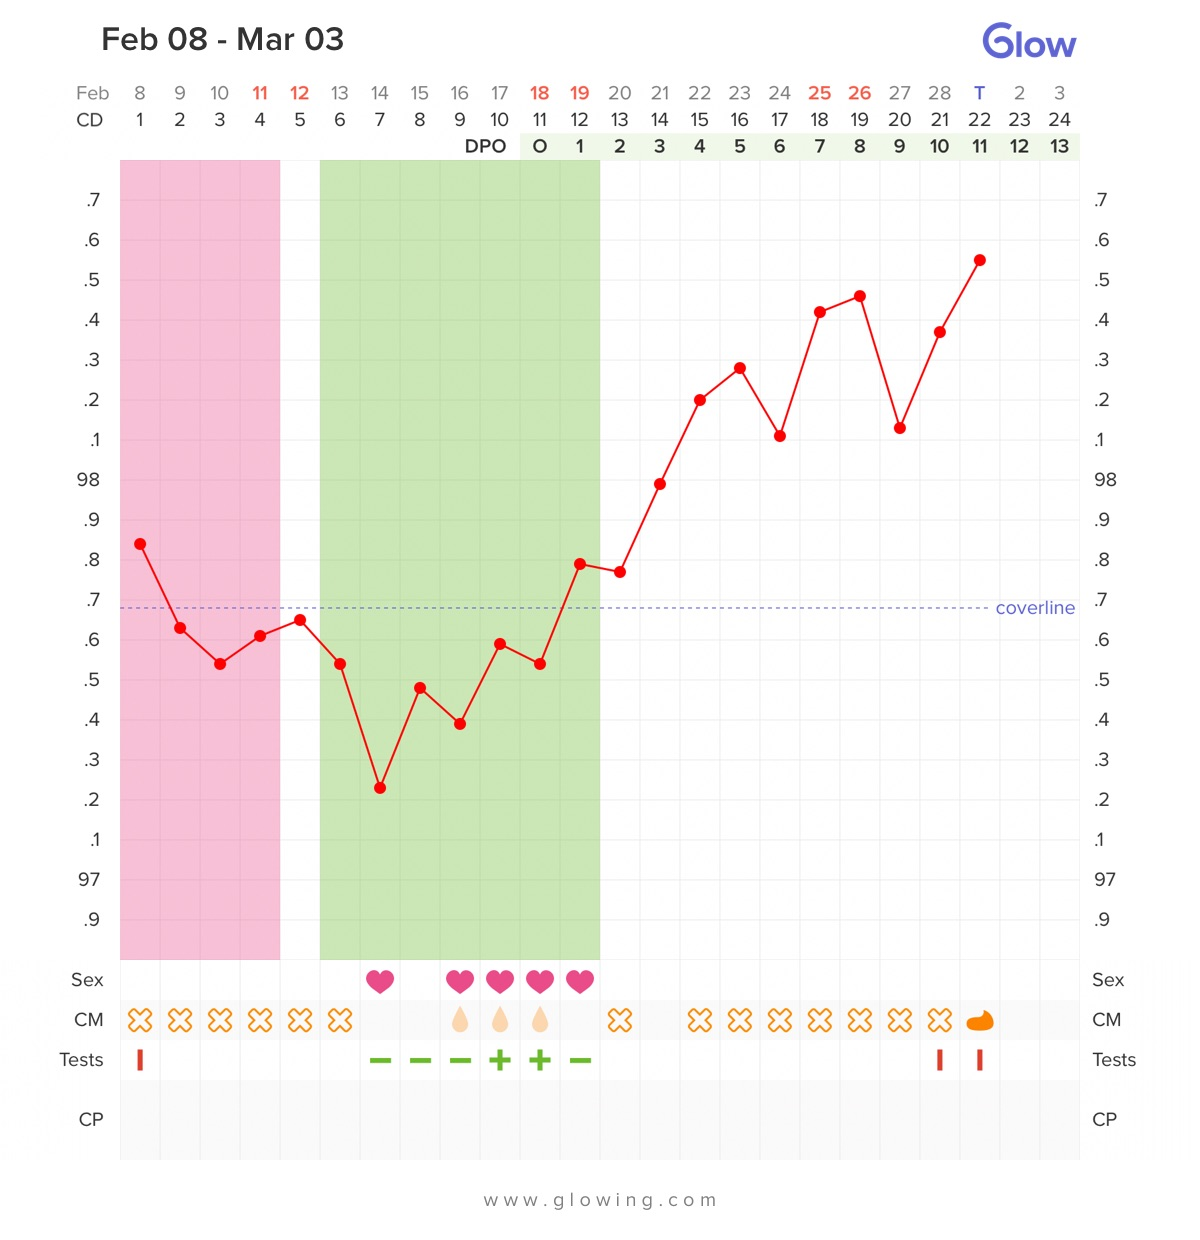 How does my chart look like? 11 DPO, no major symptoms